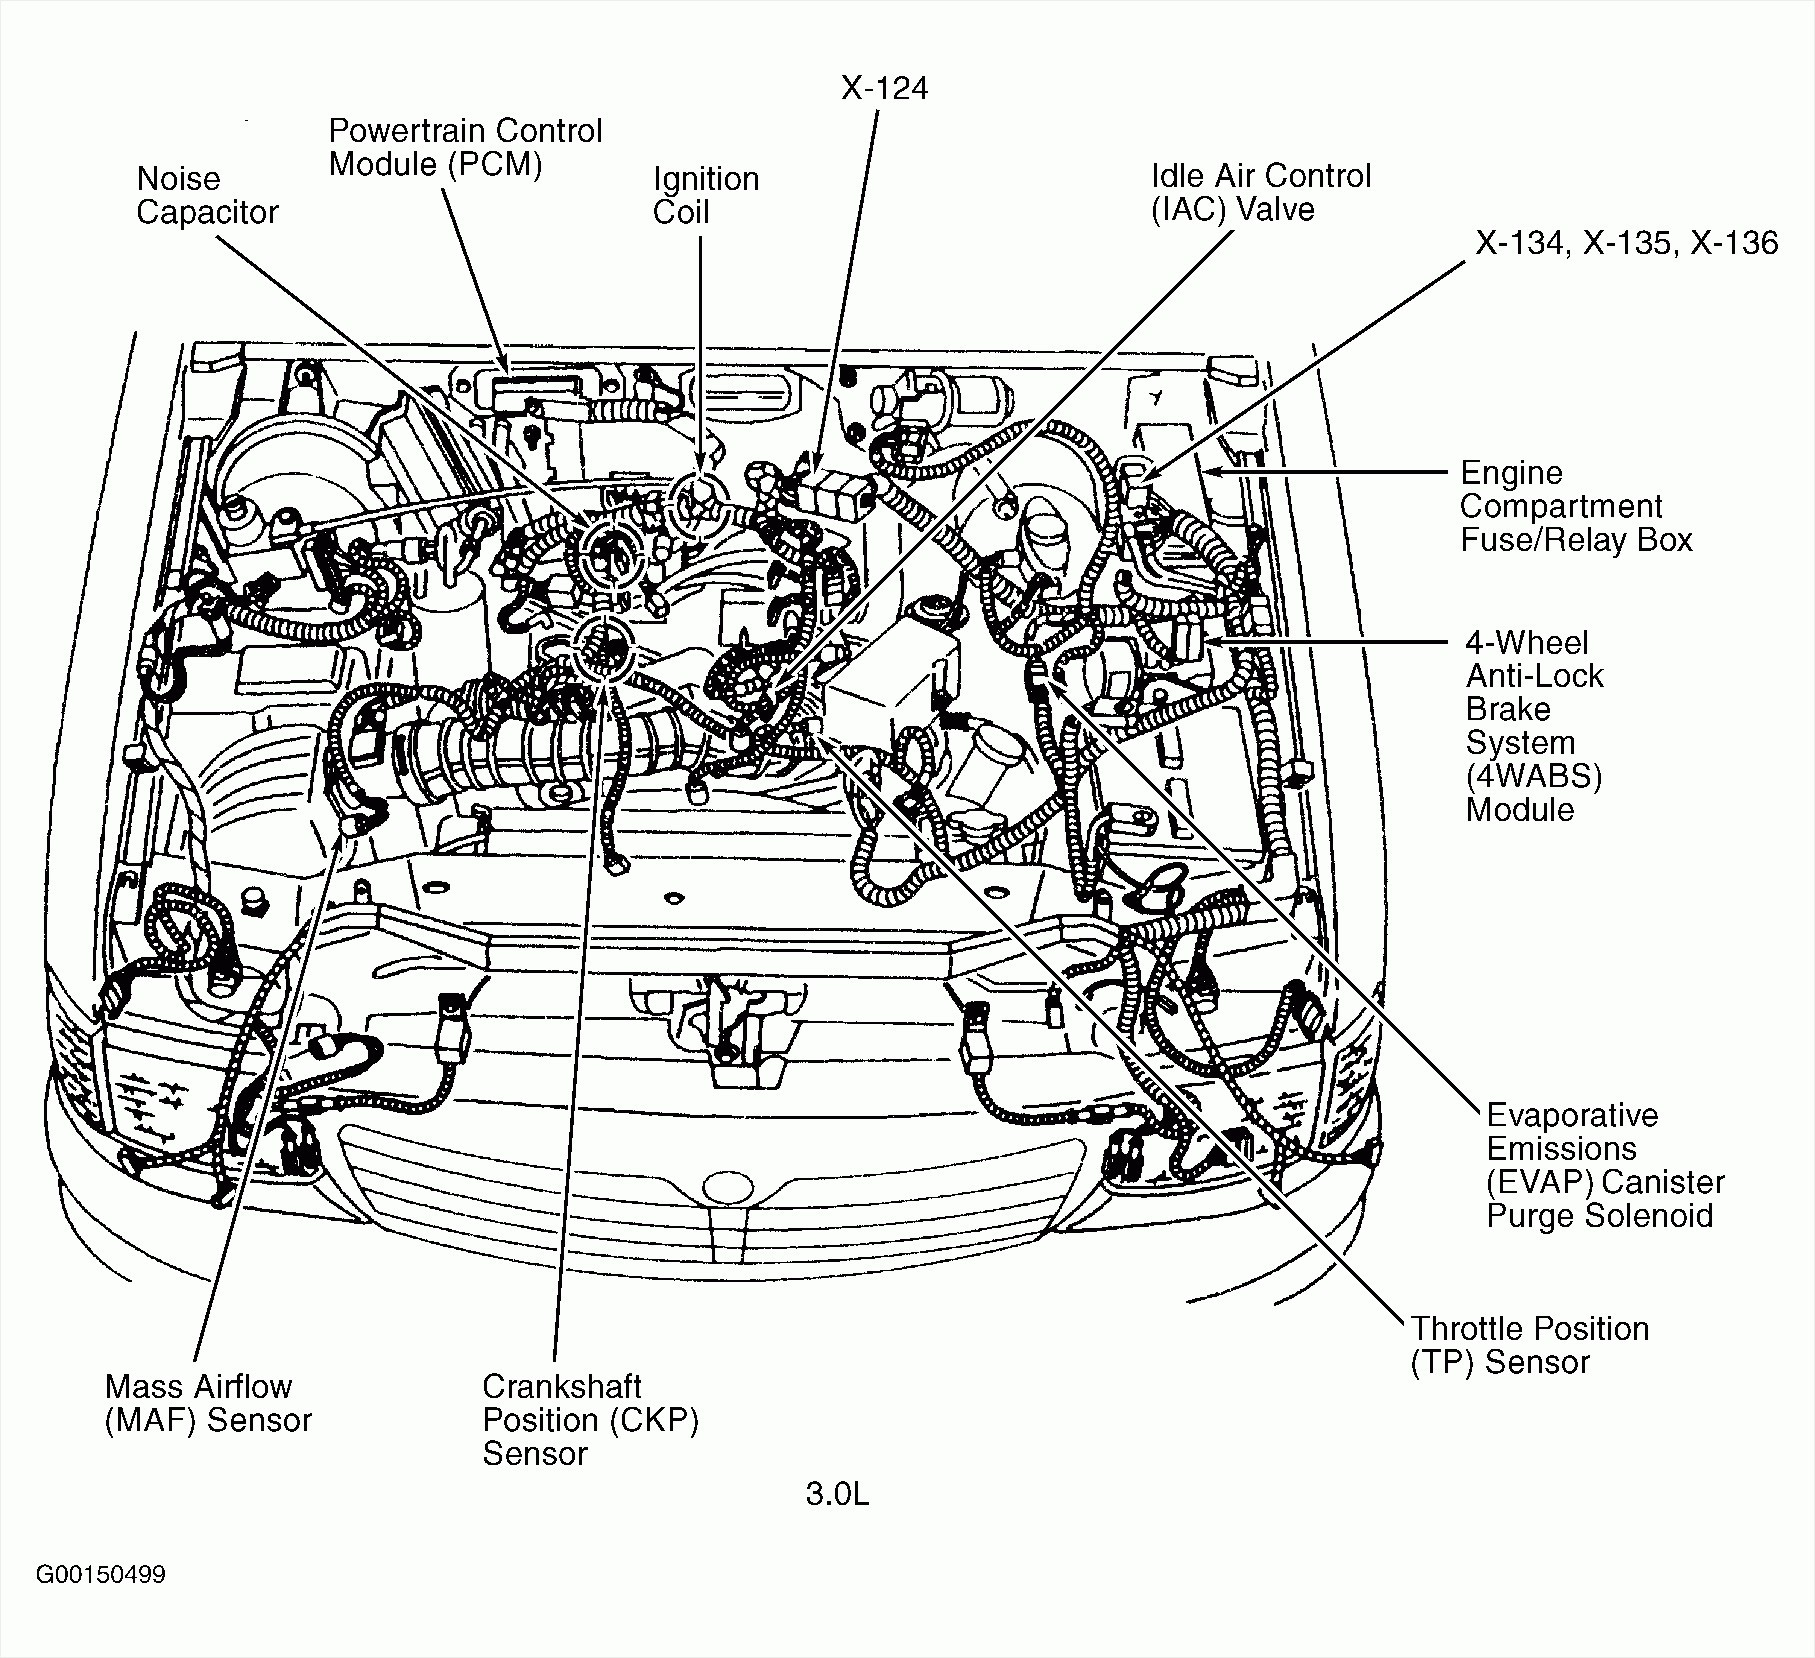 hight resolution of pt cruiser engine diagram front end wiring diagrams dimensions 2009 pt cruiser engine diagram